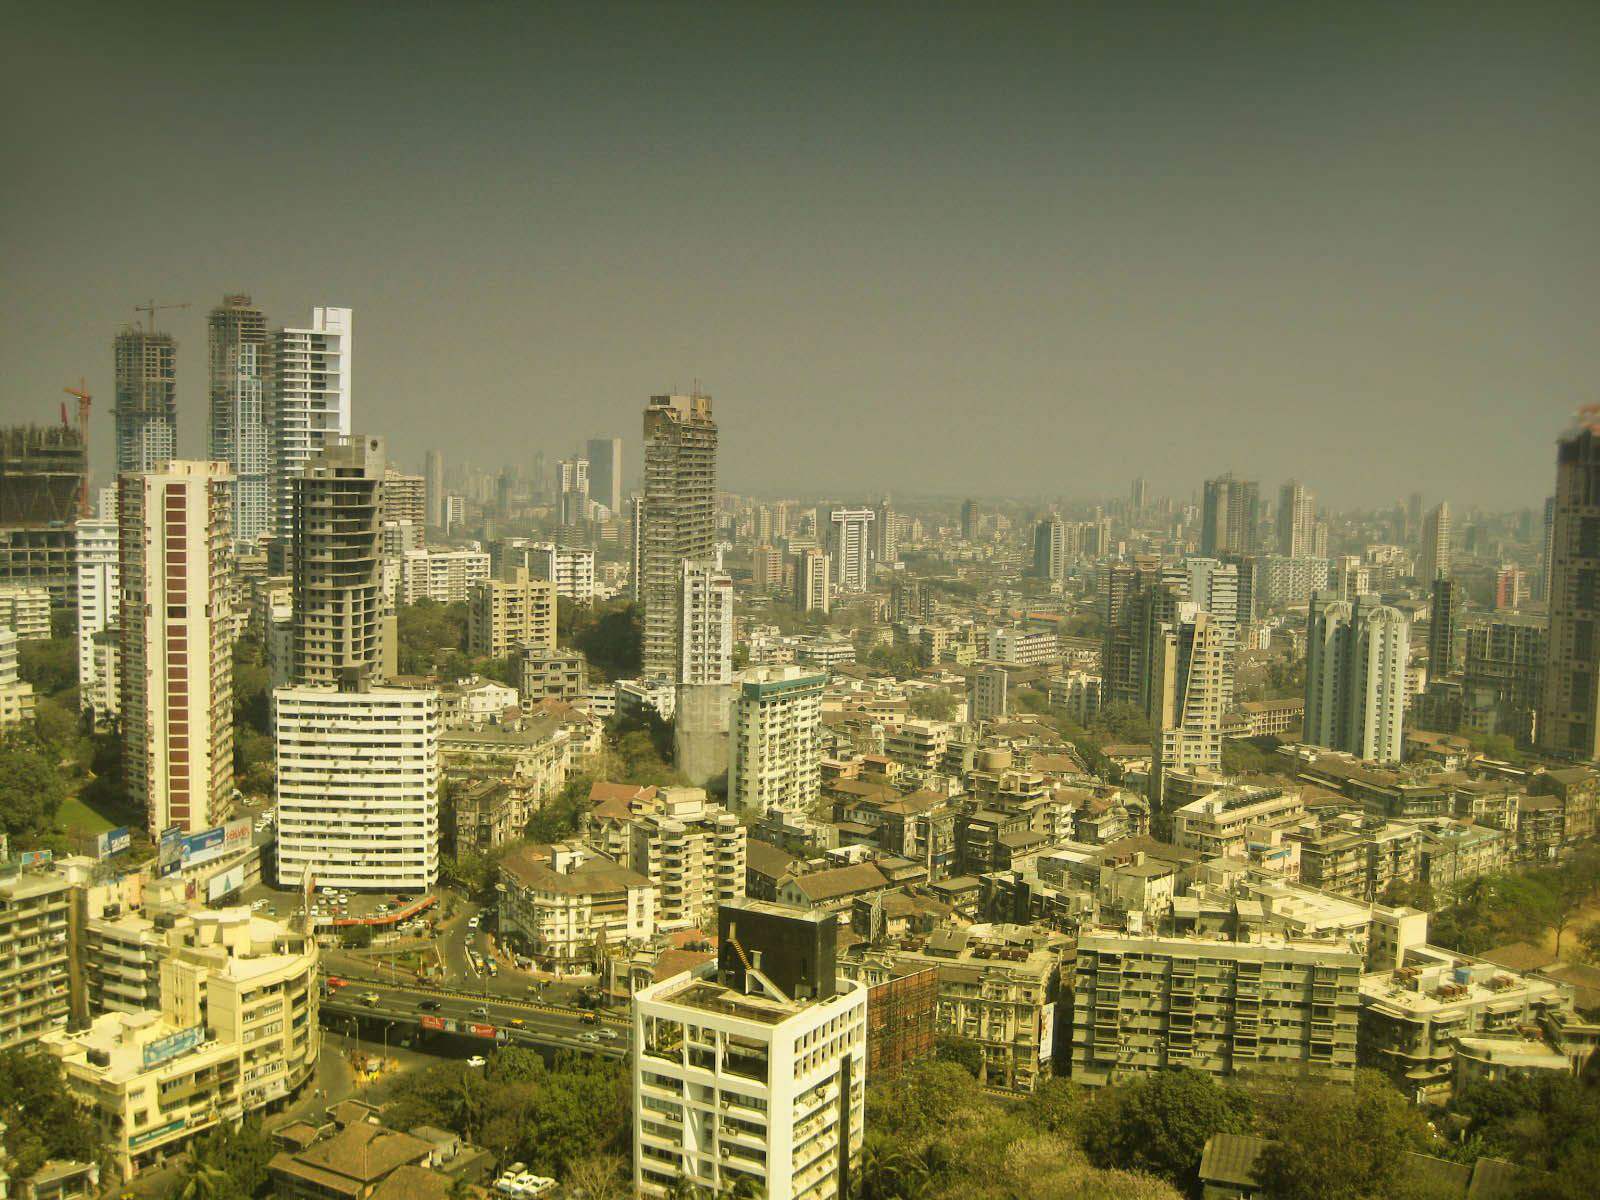 mumbai desktop wallpaper wallpapers hd india 1600x1200